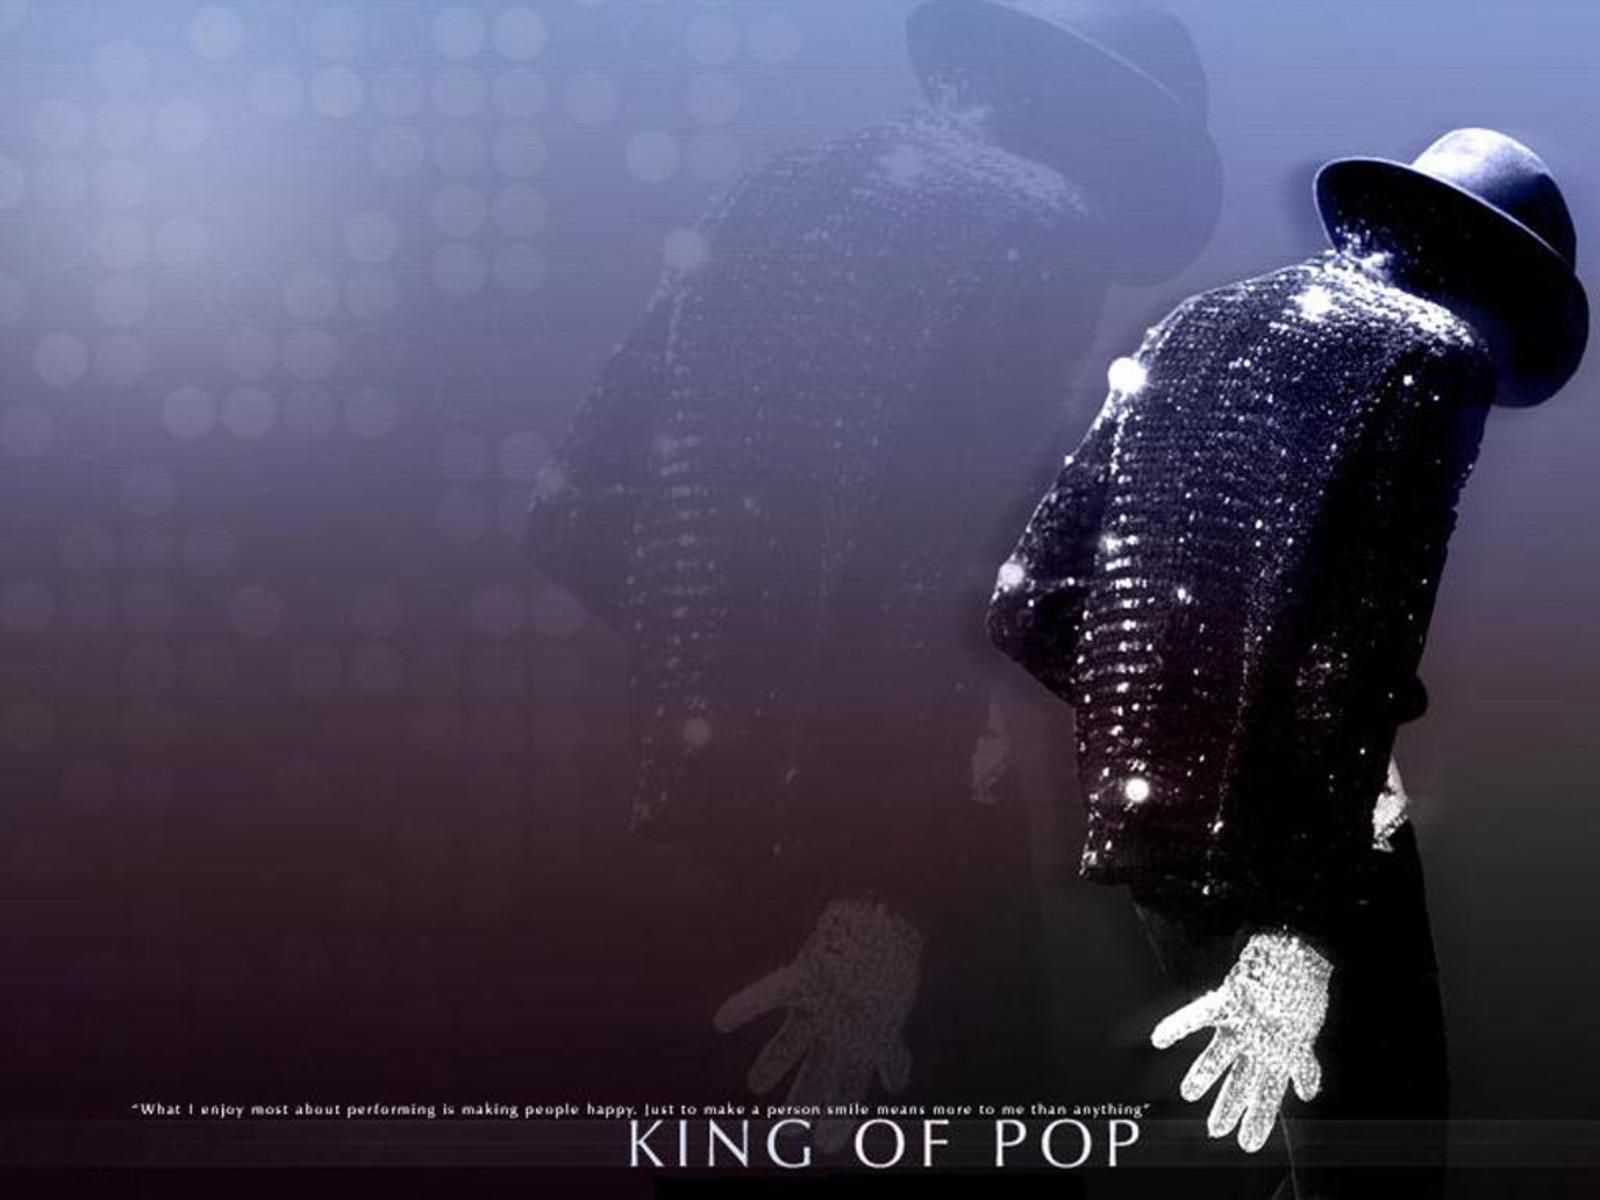 michael jackson images wallpapers - photo #23